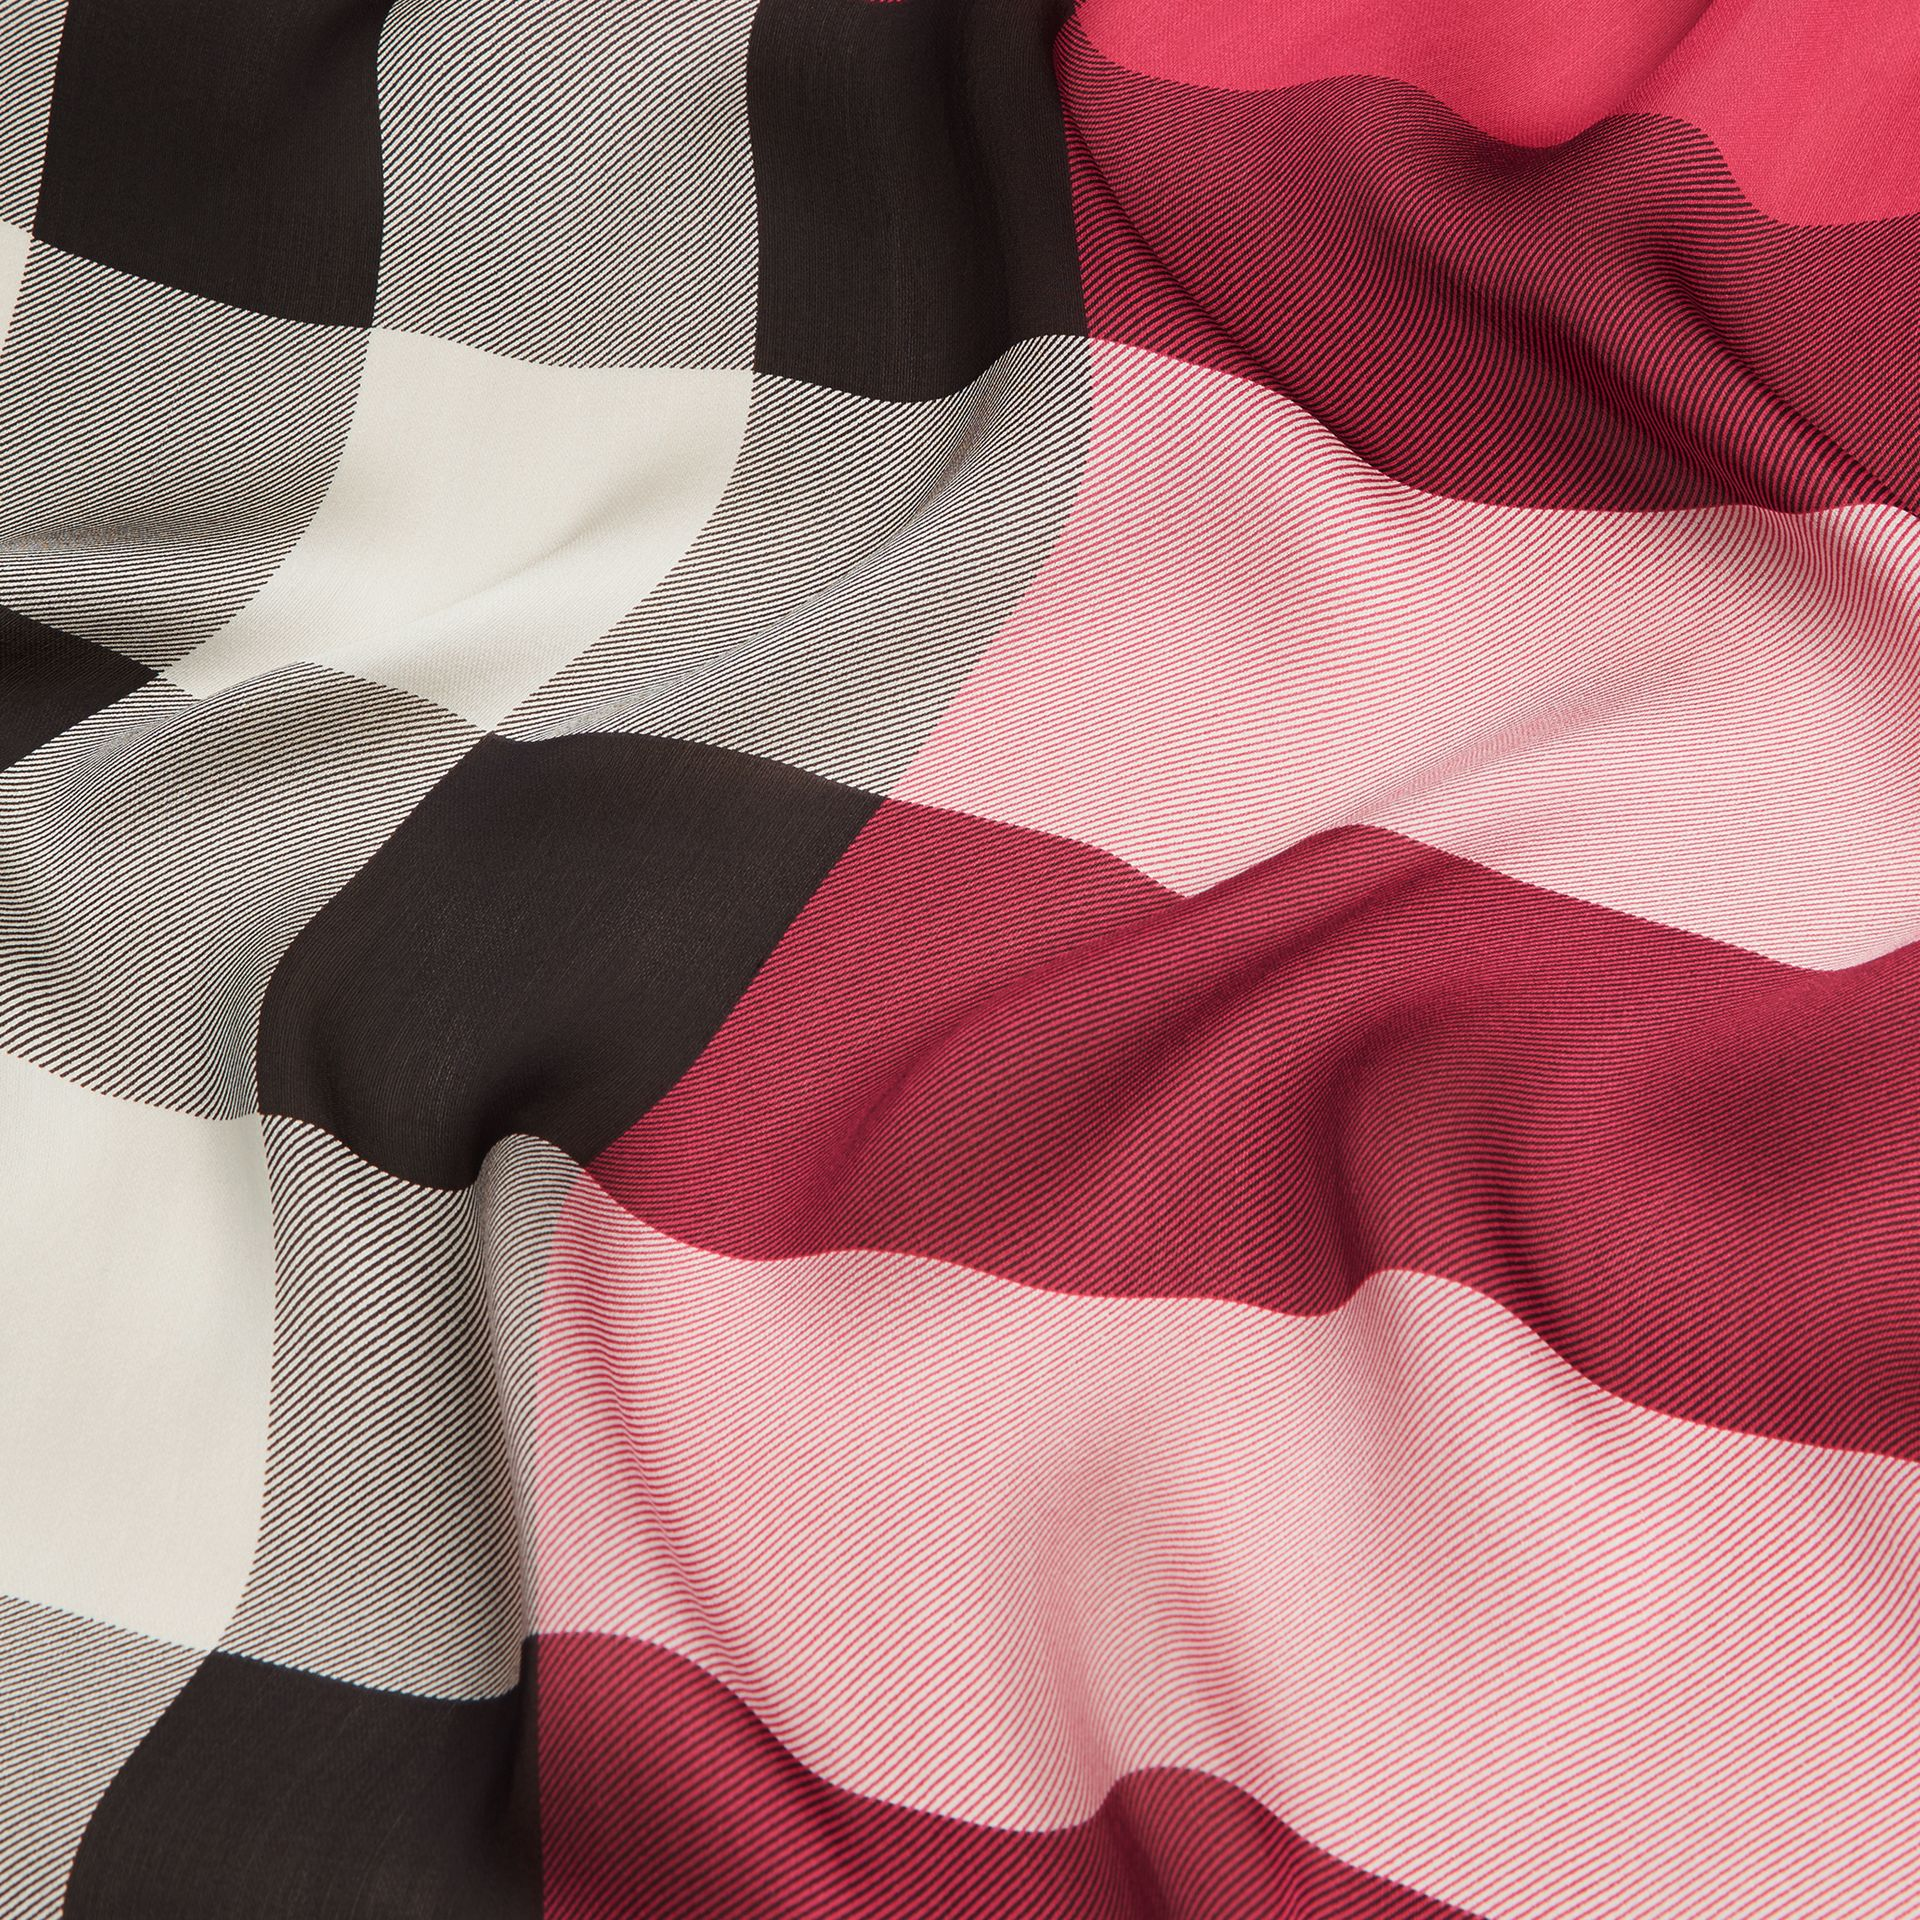 Lightweight Check Silk Scarf in Fuchsia Pink - Women | Burberry Canada - gallery image 2